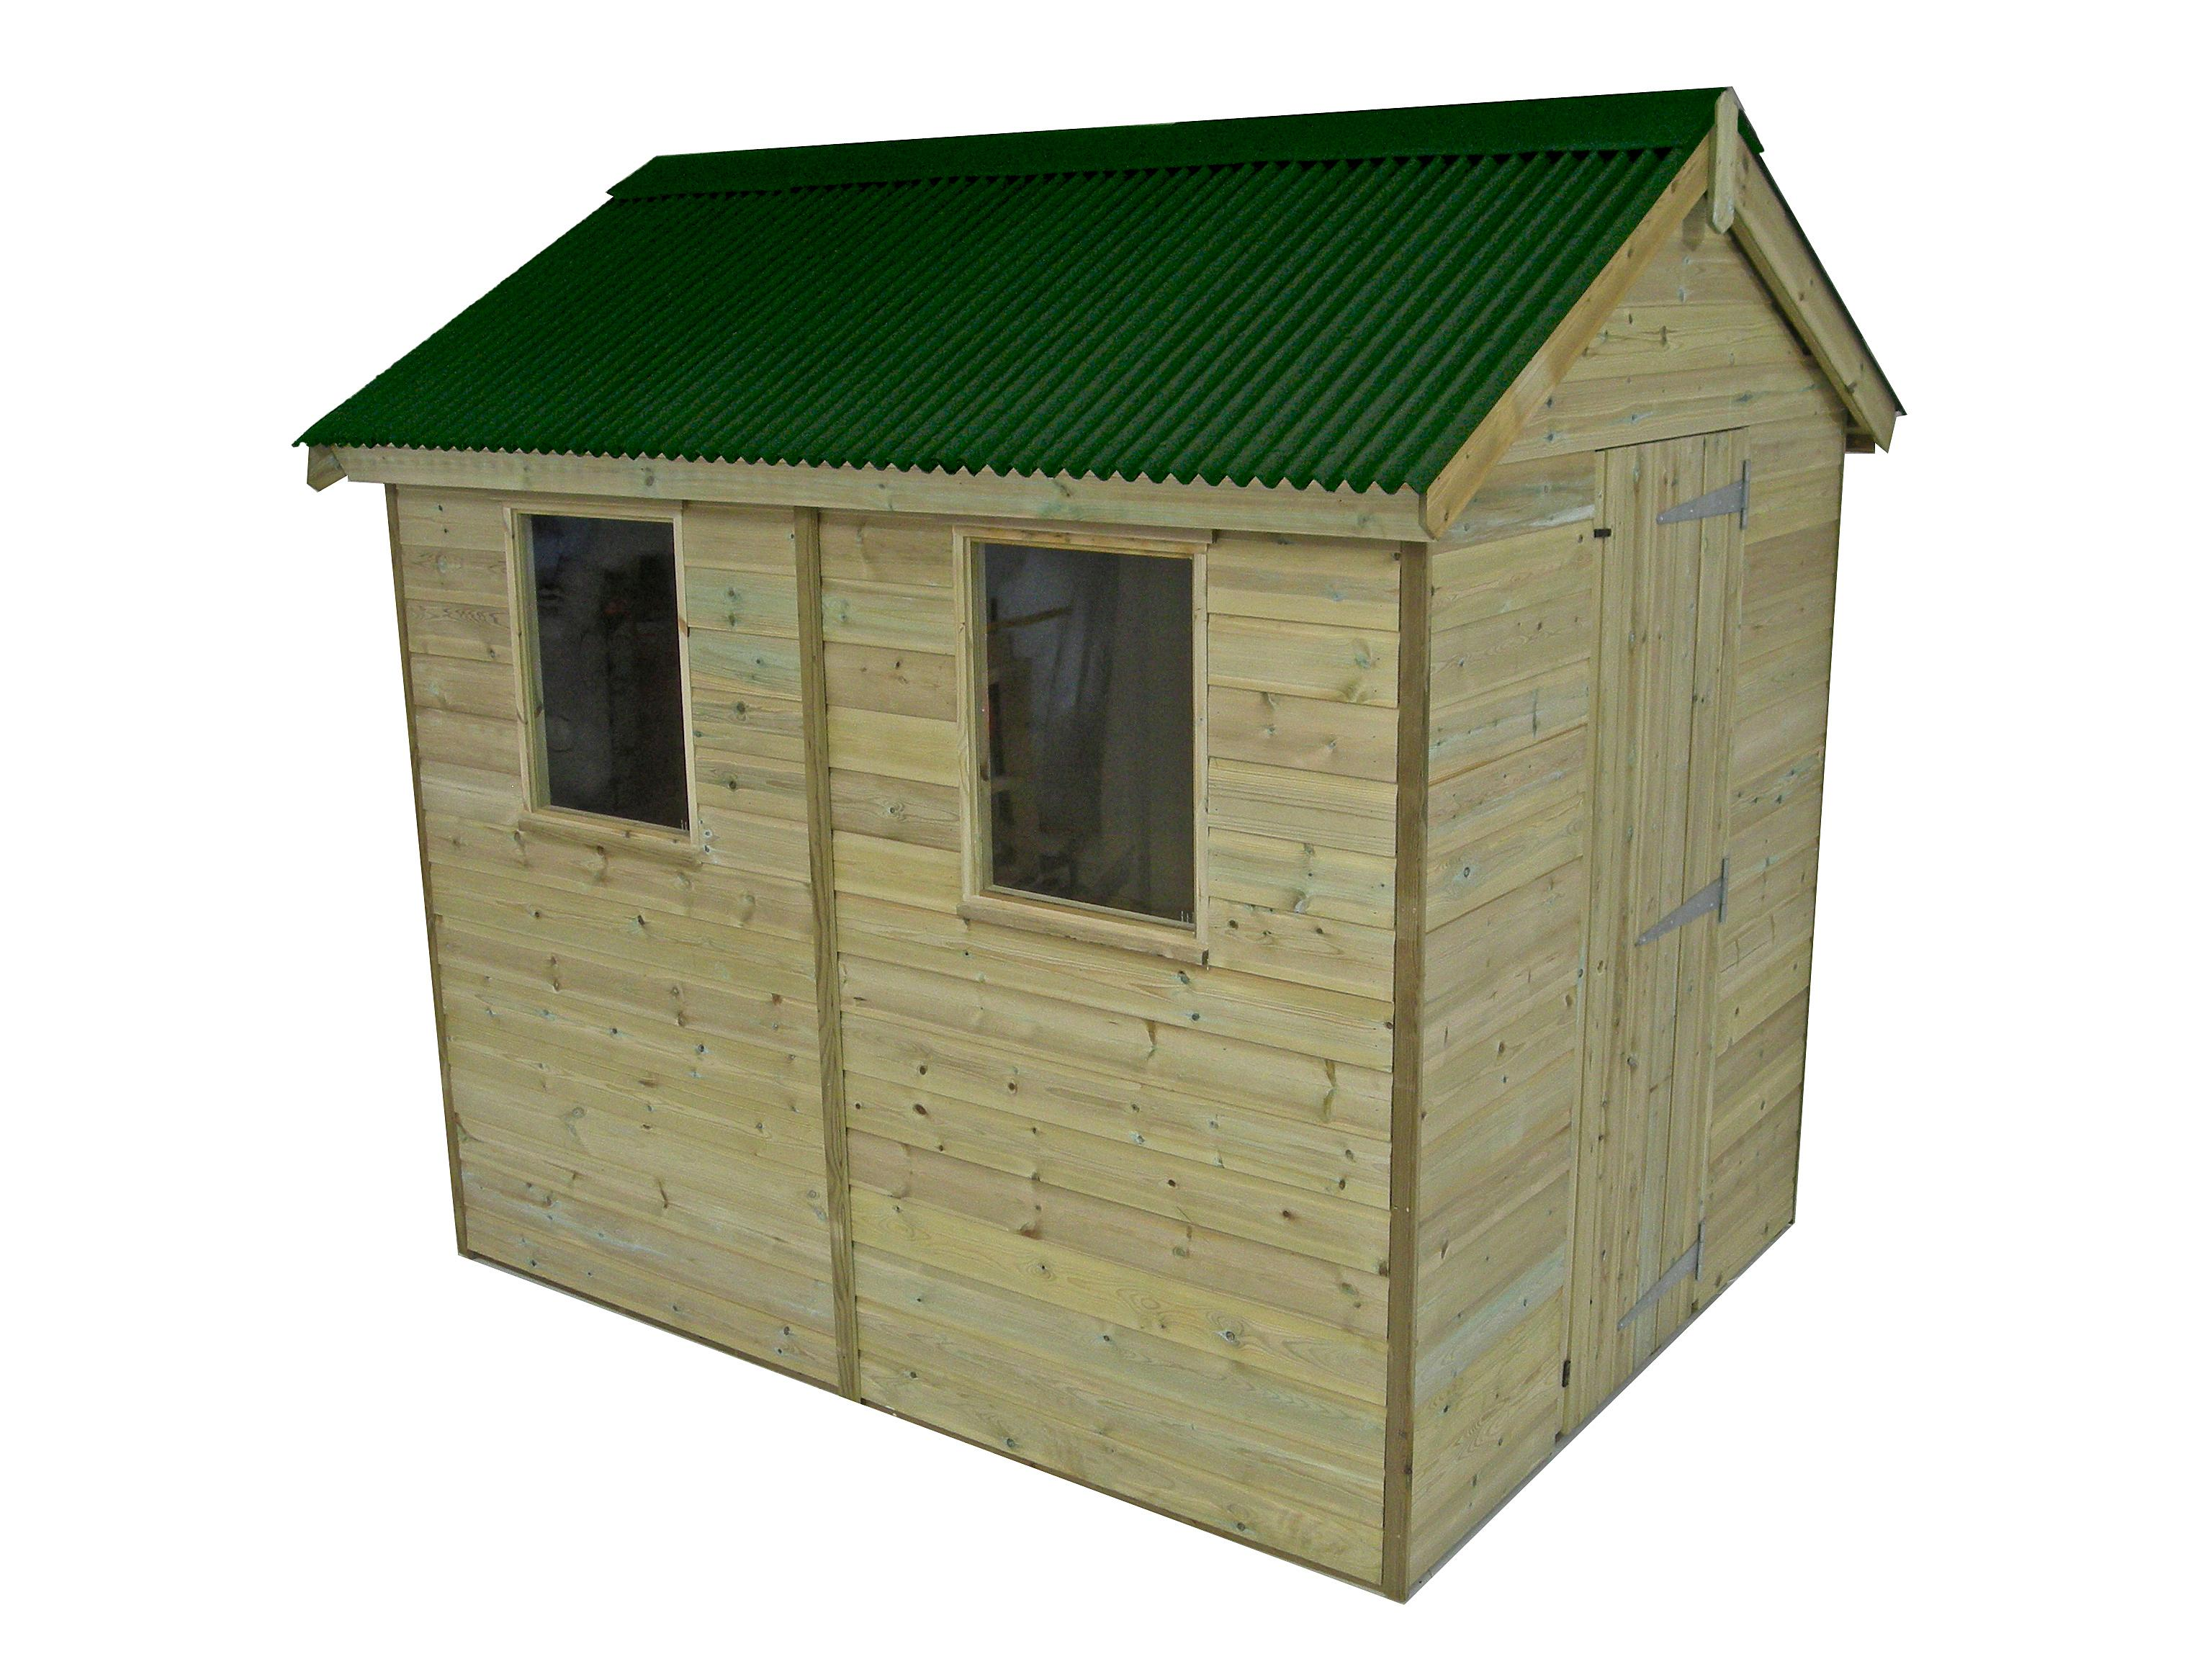 Onduline Mini Profile Roof Shed Kit - 6x4ft